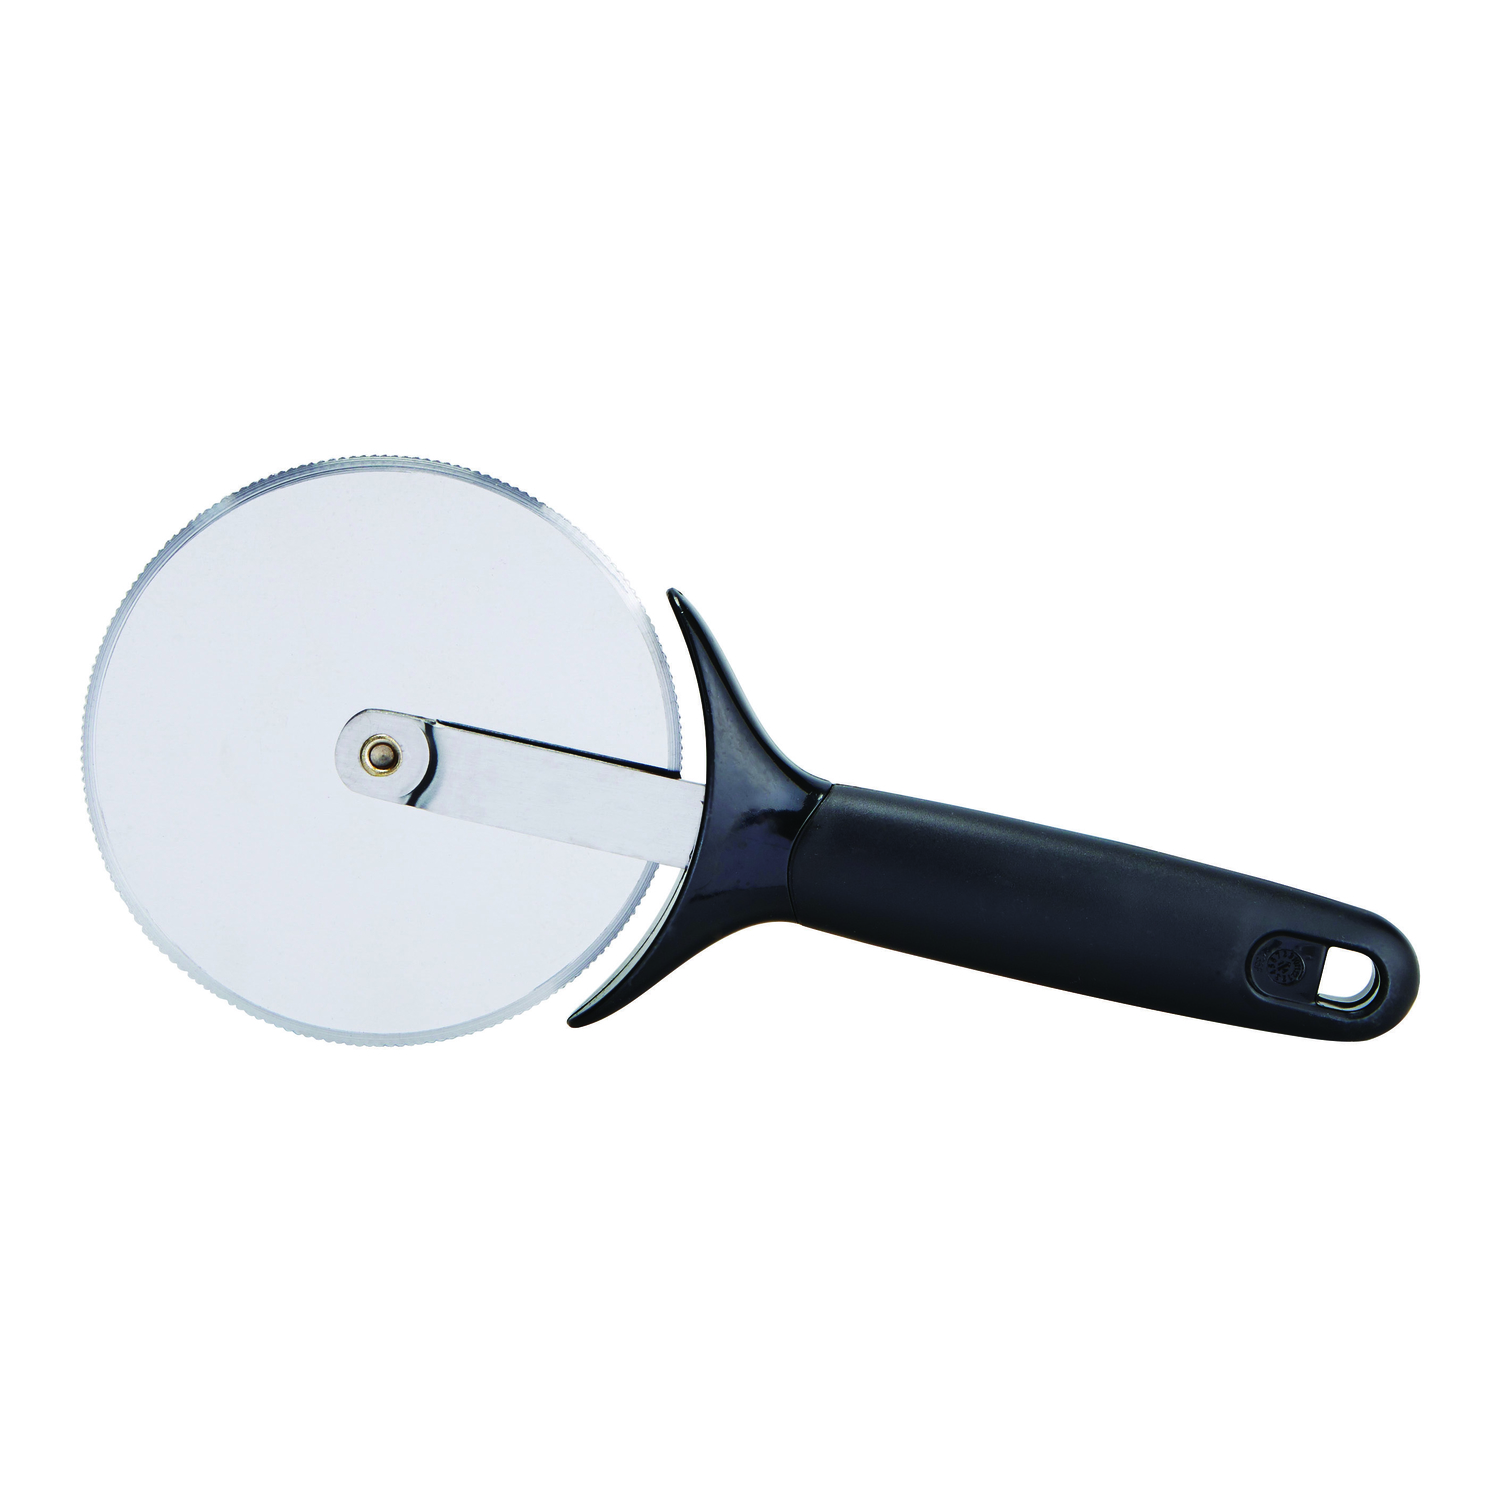 Good Cook  Silver/Black  Jumbo Pizza Cutter